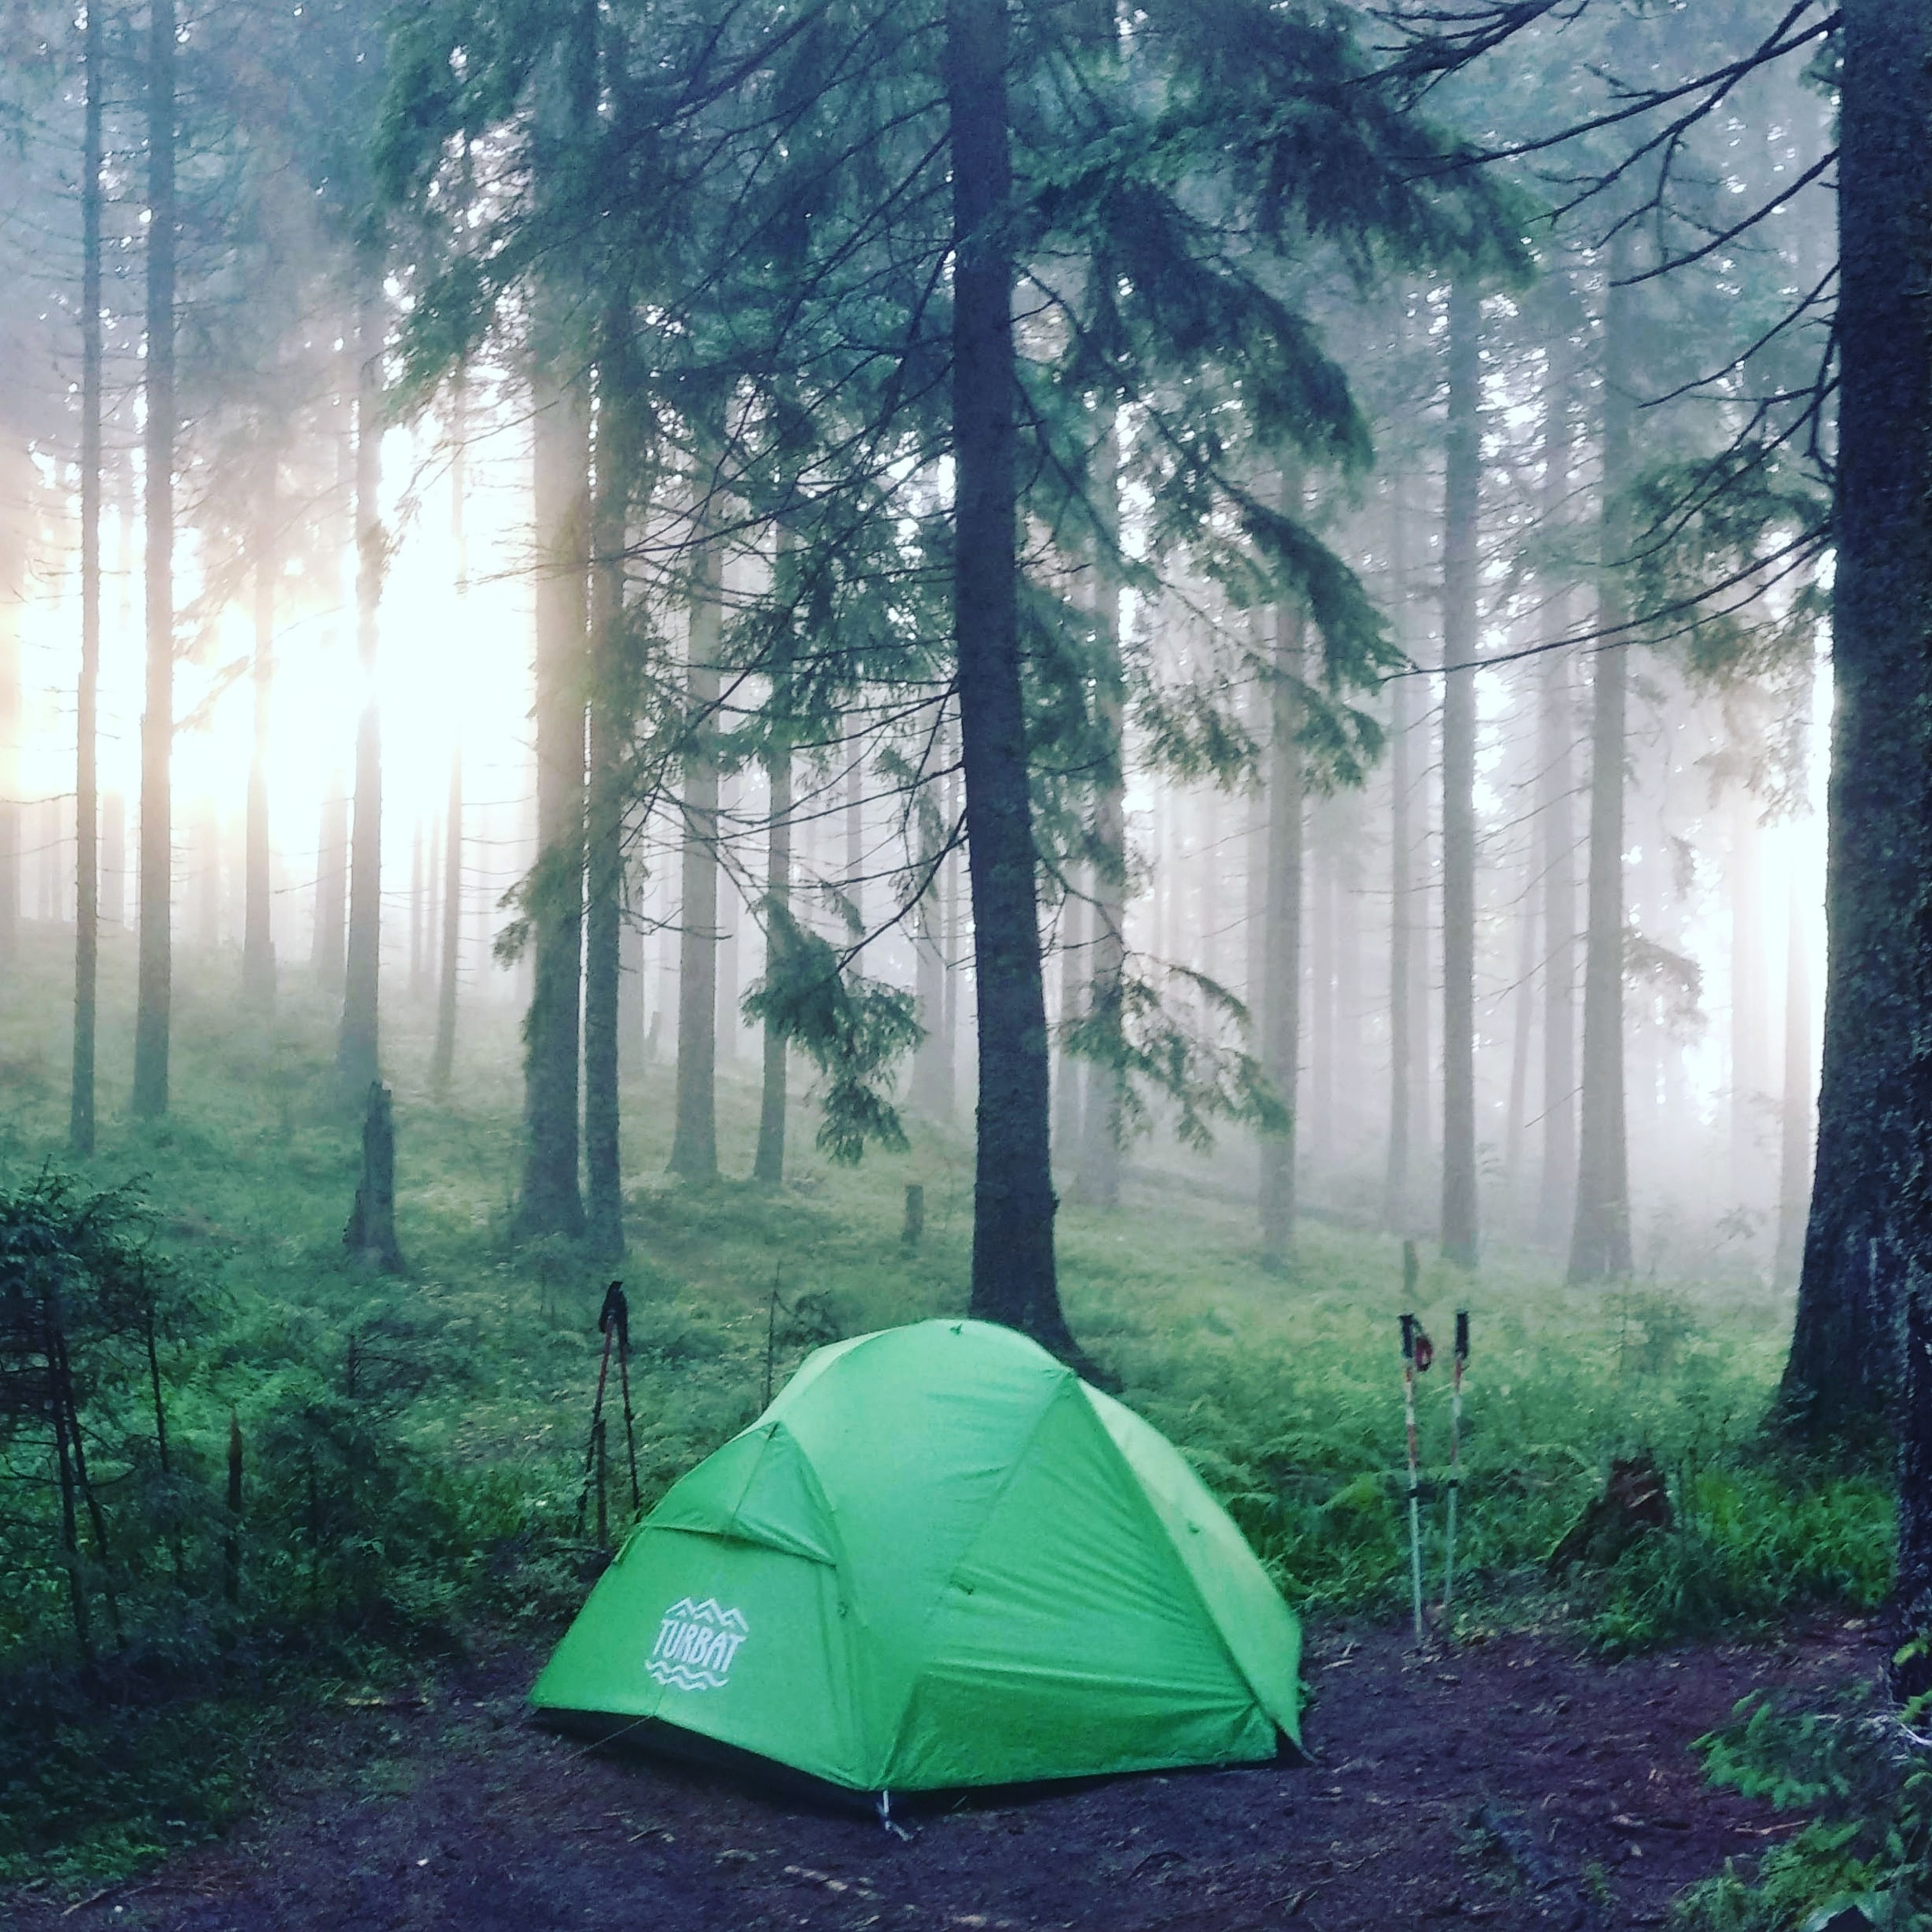 Let S Camp Camping Photography Adventure Camping Starry Night Camping Hd wallpaper tent camping forest fog